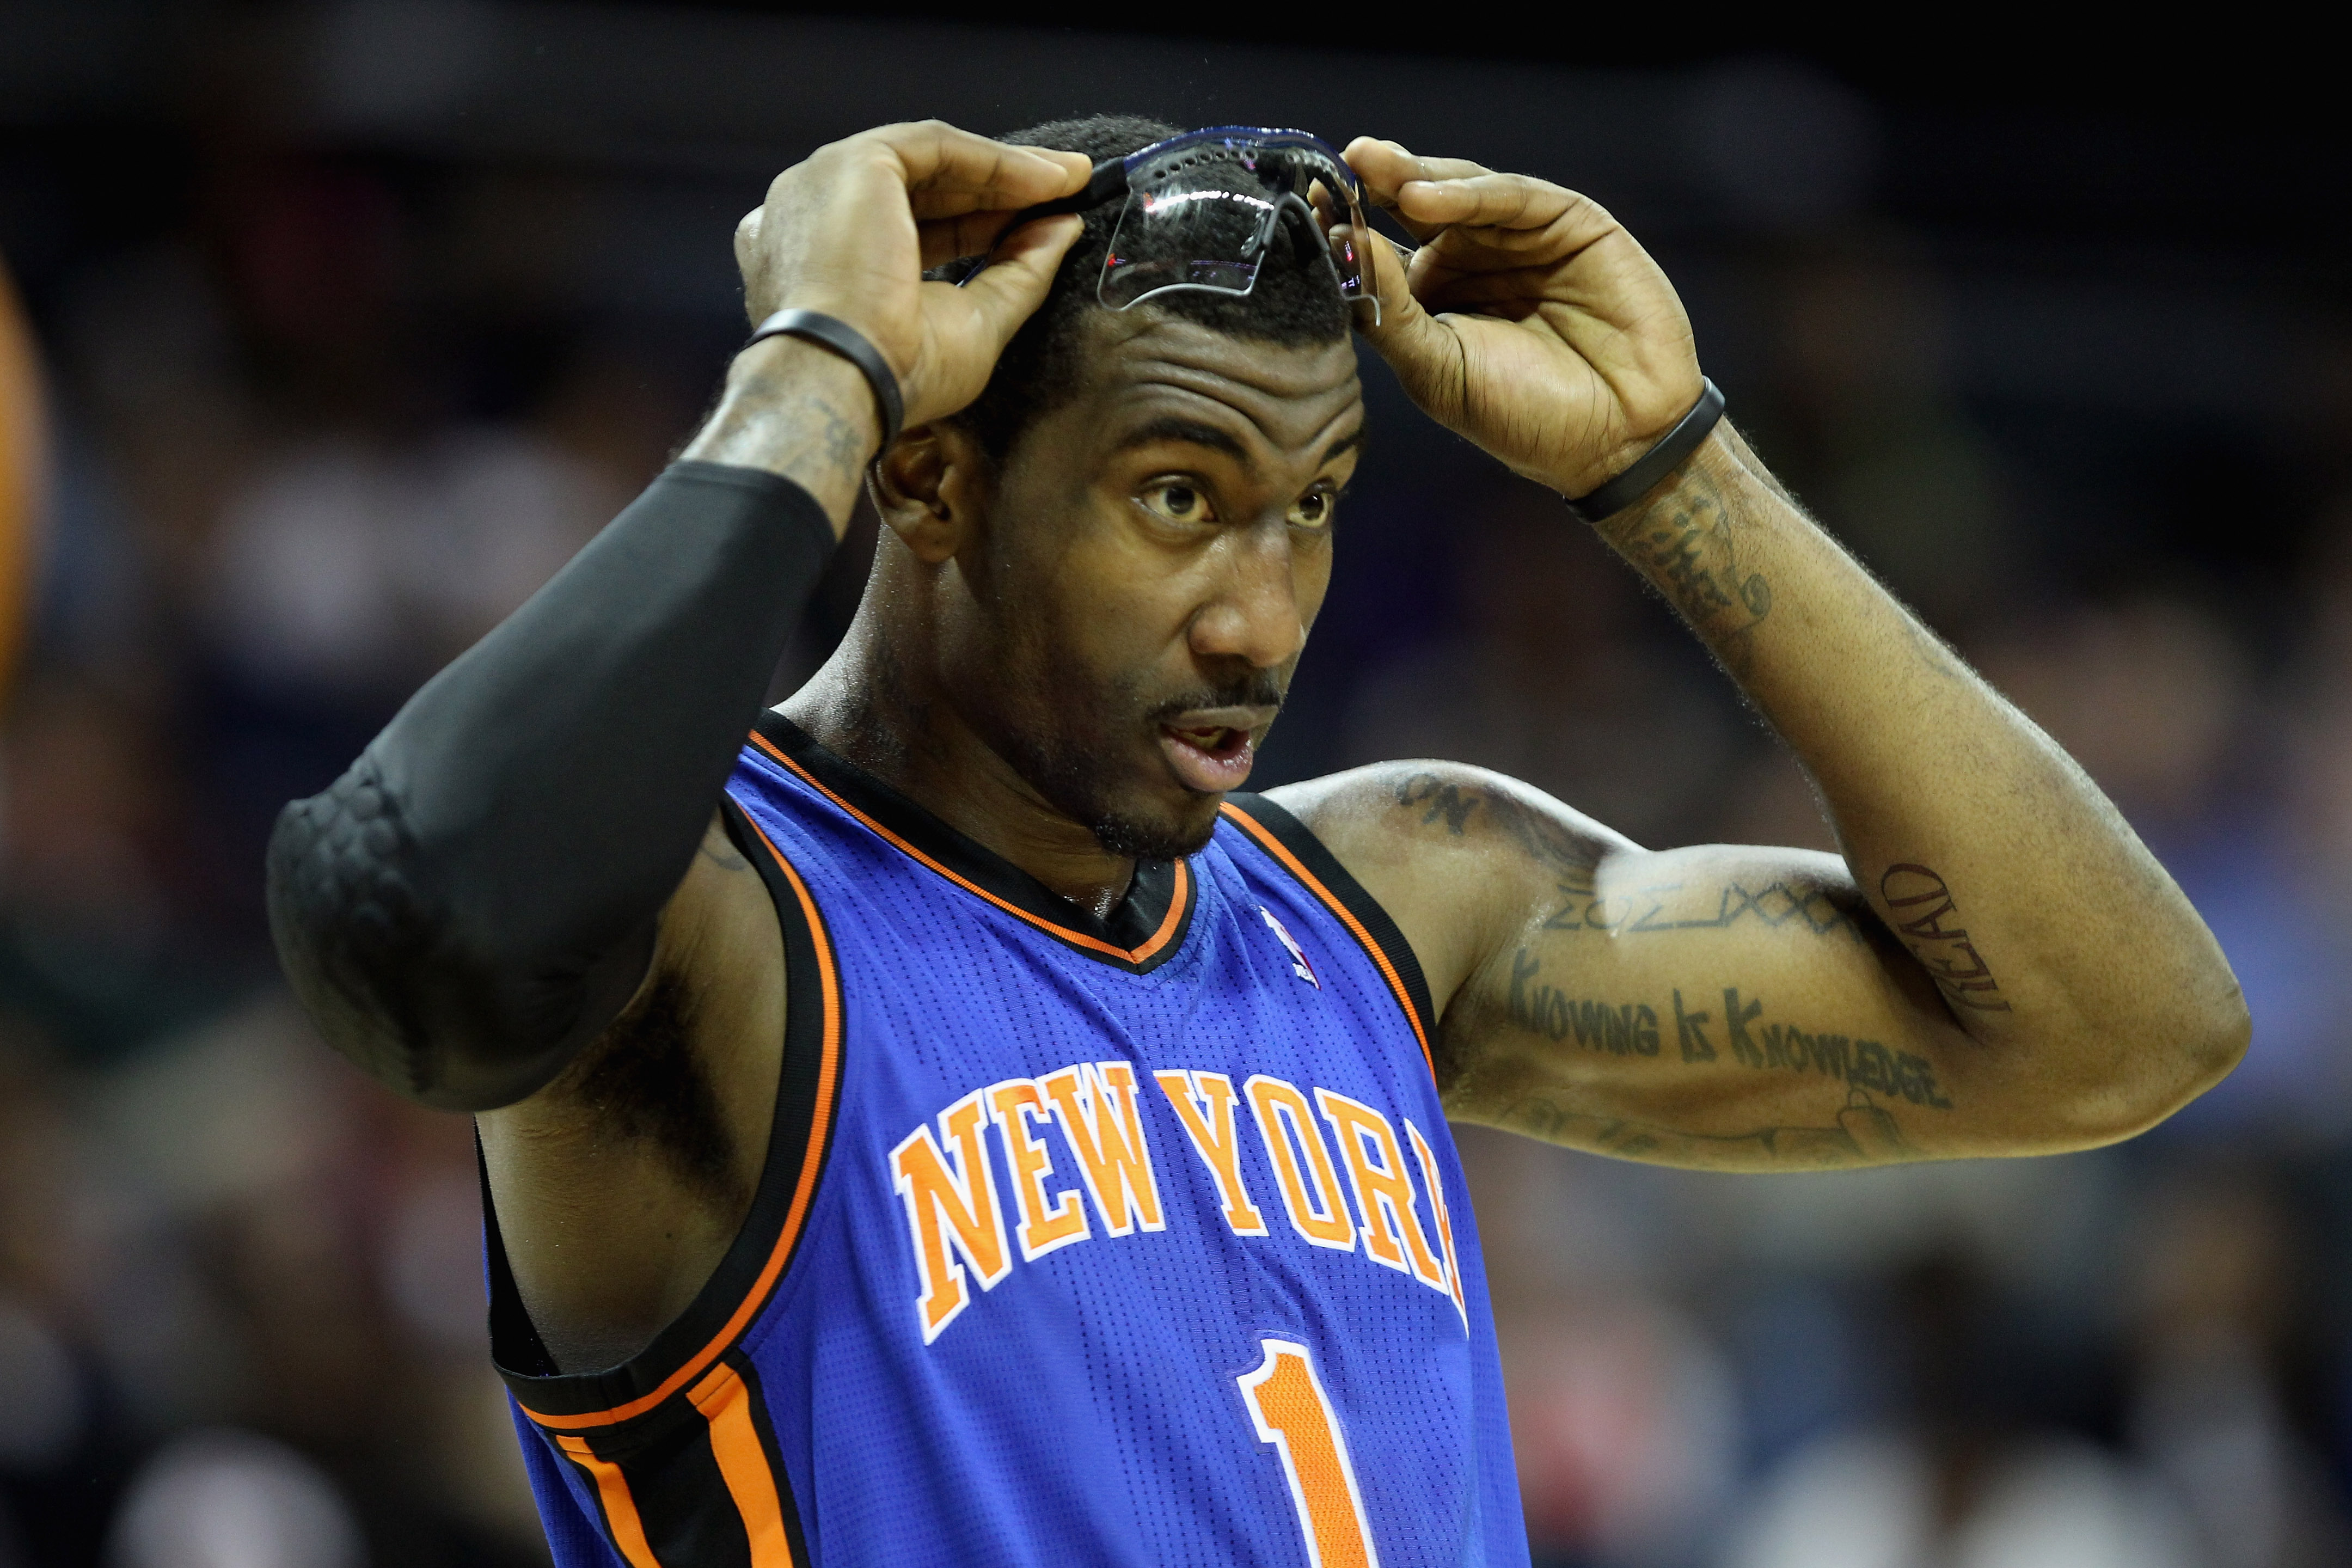 CHARLOTTE, NC - NOVEMBER 24:  Amare Stoudemire #1 of the New York Knicks watches on during his game against the Charlotte Bobcats at Time Warner Cable Arena on November 24, 2010 in Charlotte, North Carolina.  NOTE TO USER: User expressly acknowledges and